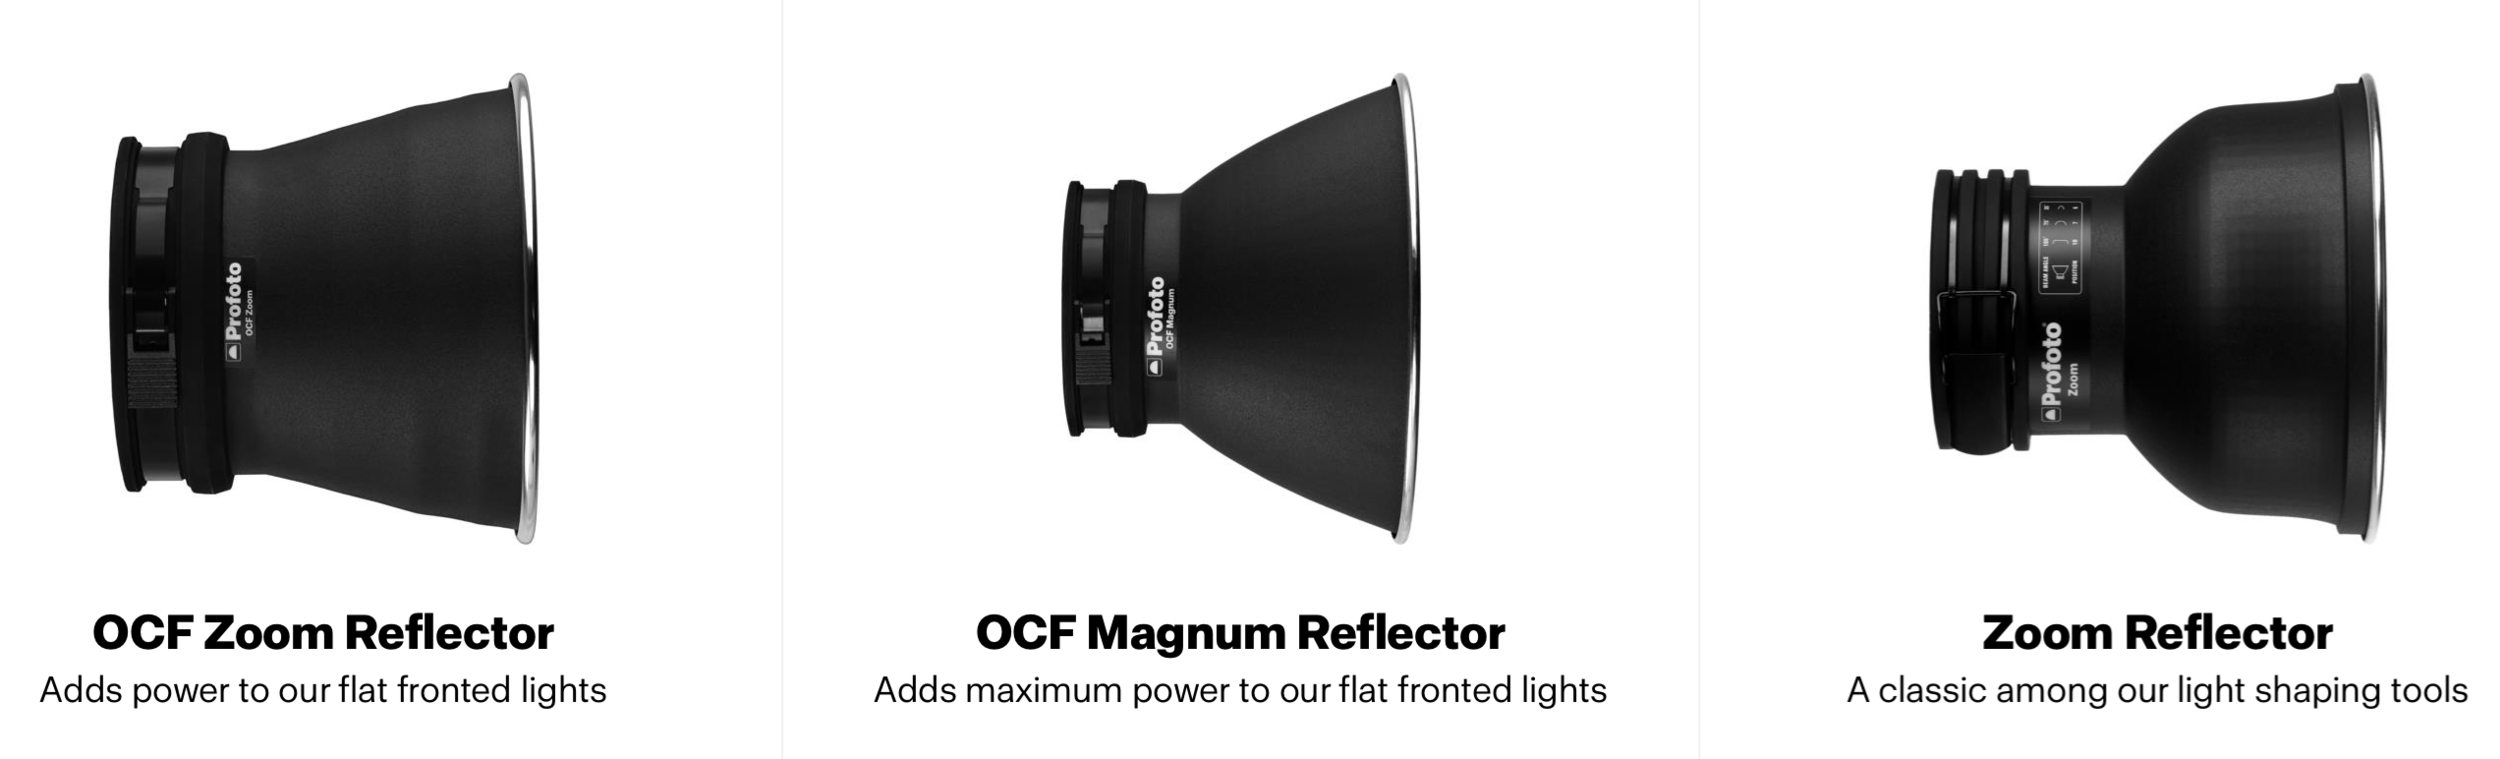 Profoto has a bunch of open reflector dishes just like any other lighting company, but these are their main smaller ones.